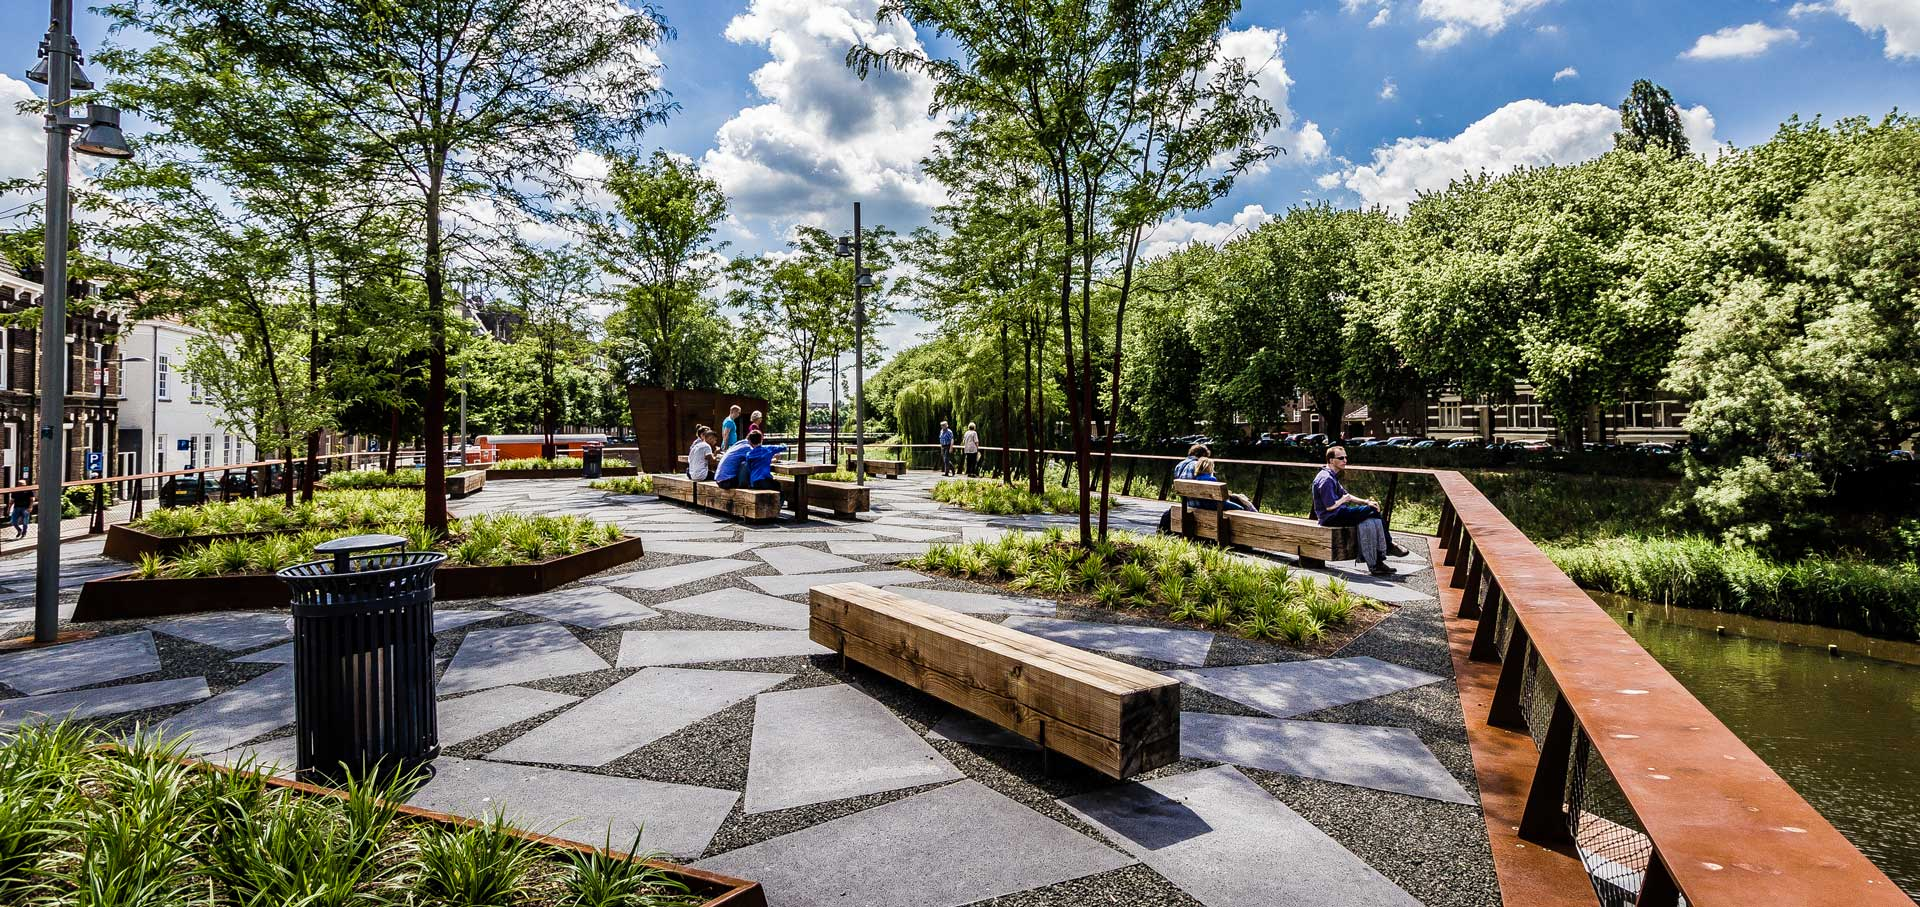 Public Roof Park On A River 1 171 Landscape Architecture